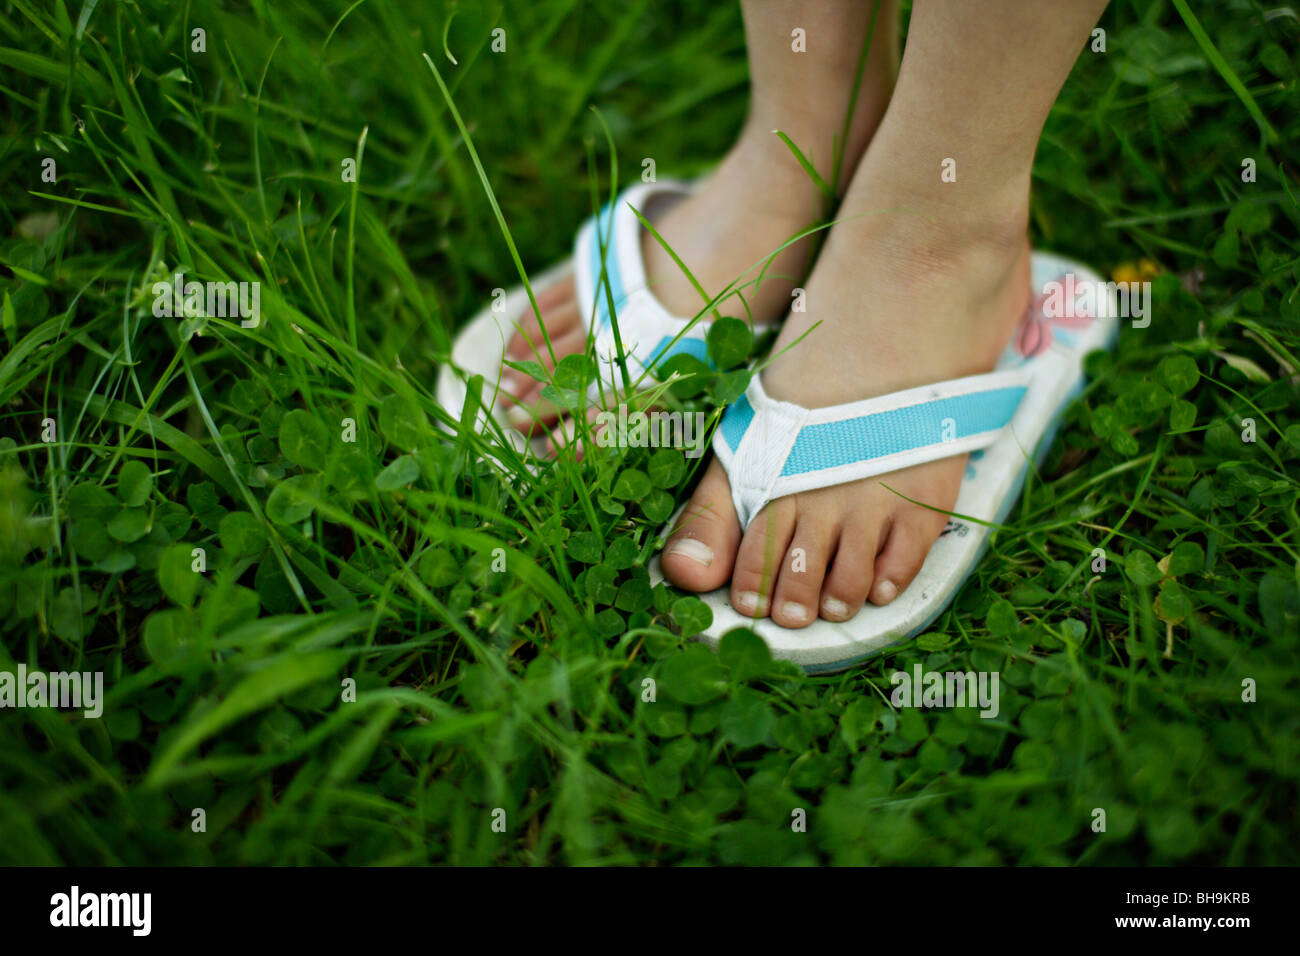 4c763dde302b5f Girl Flip Flops Stock Photos & Girl Flip Flops Stock Images - Alamy